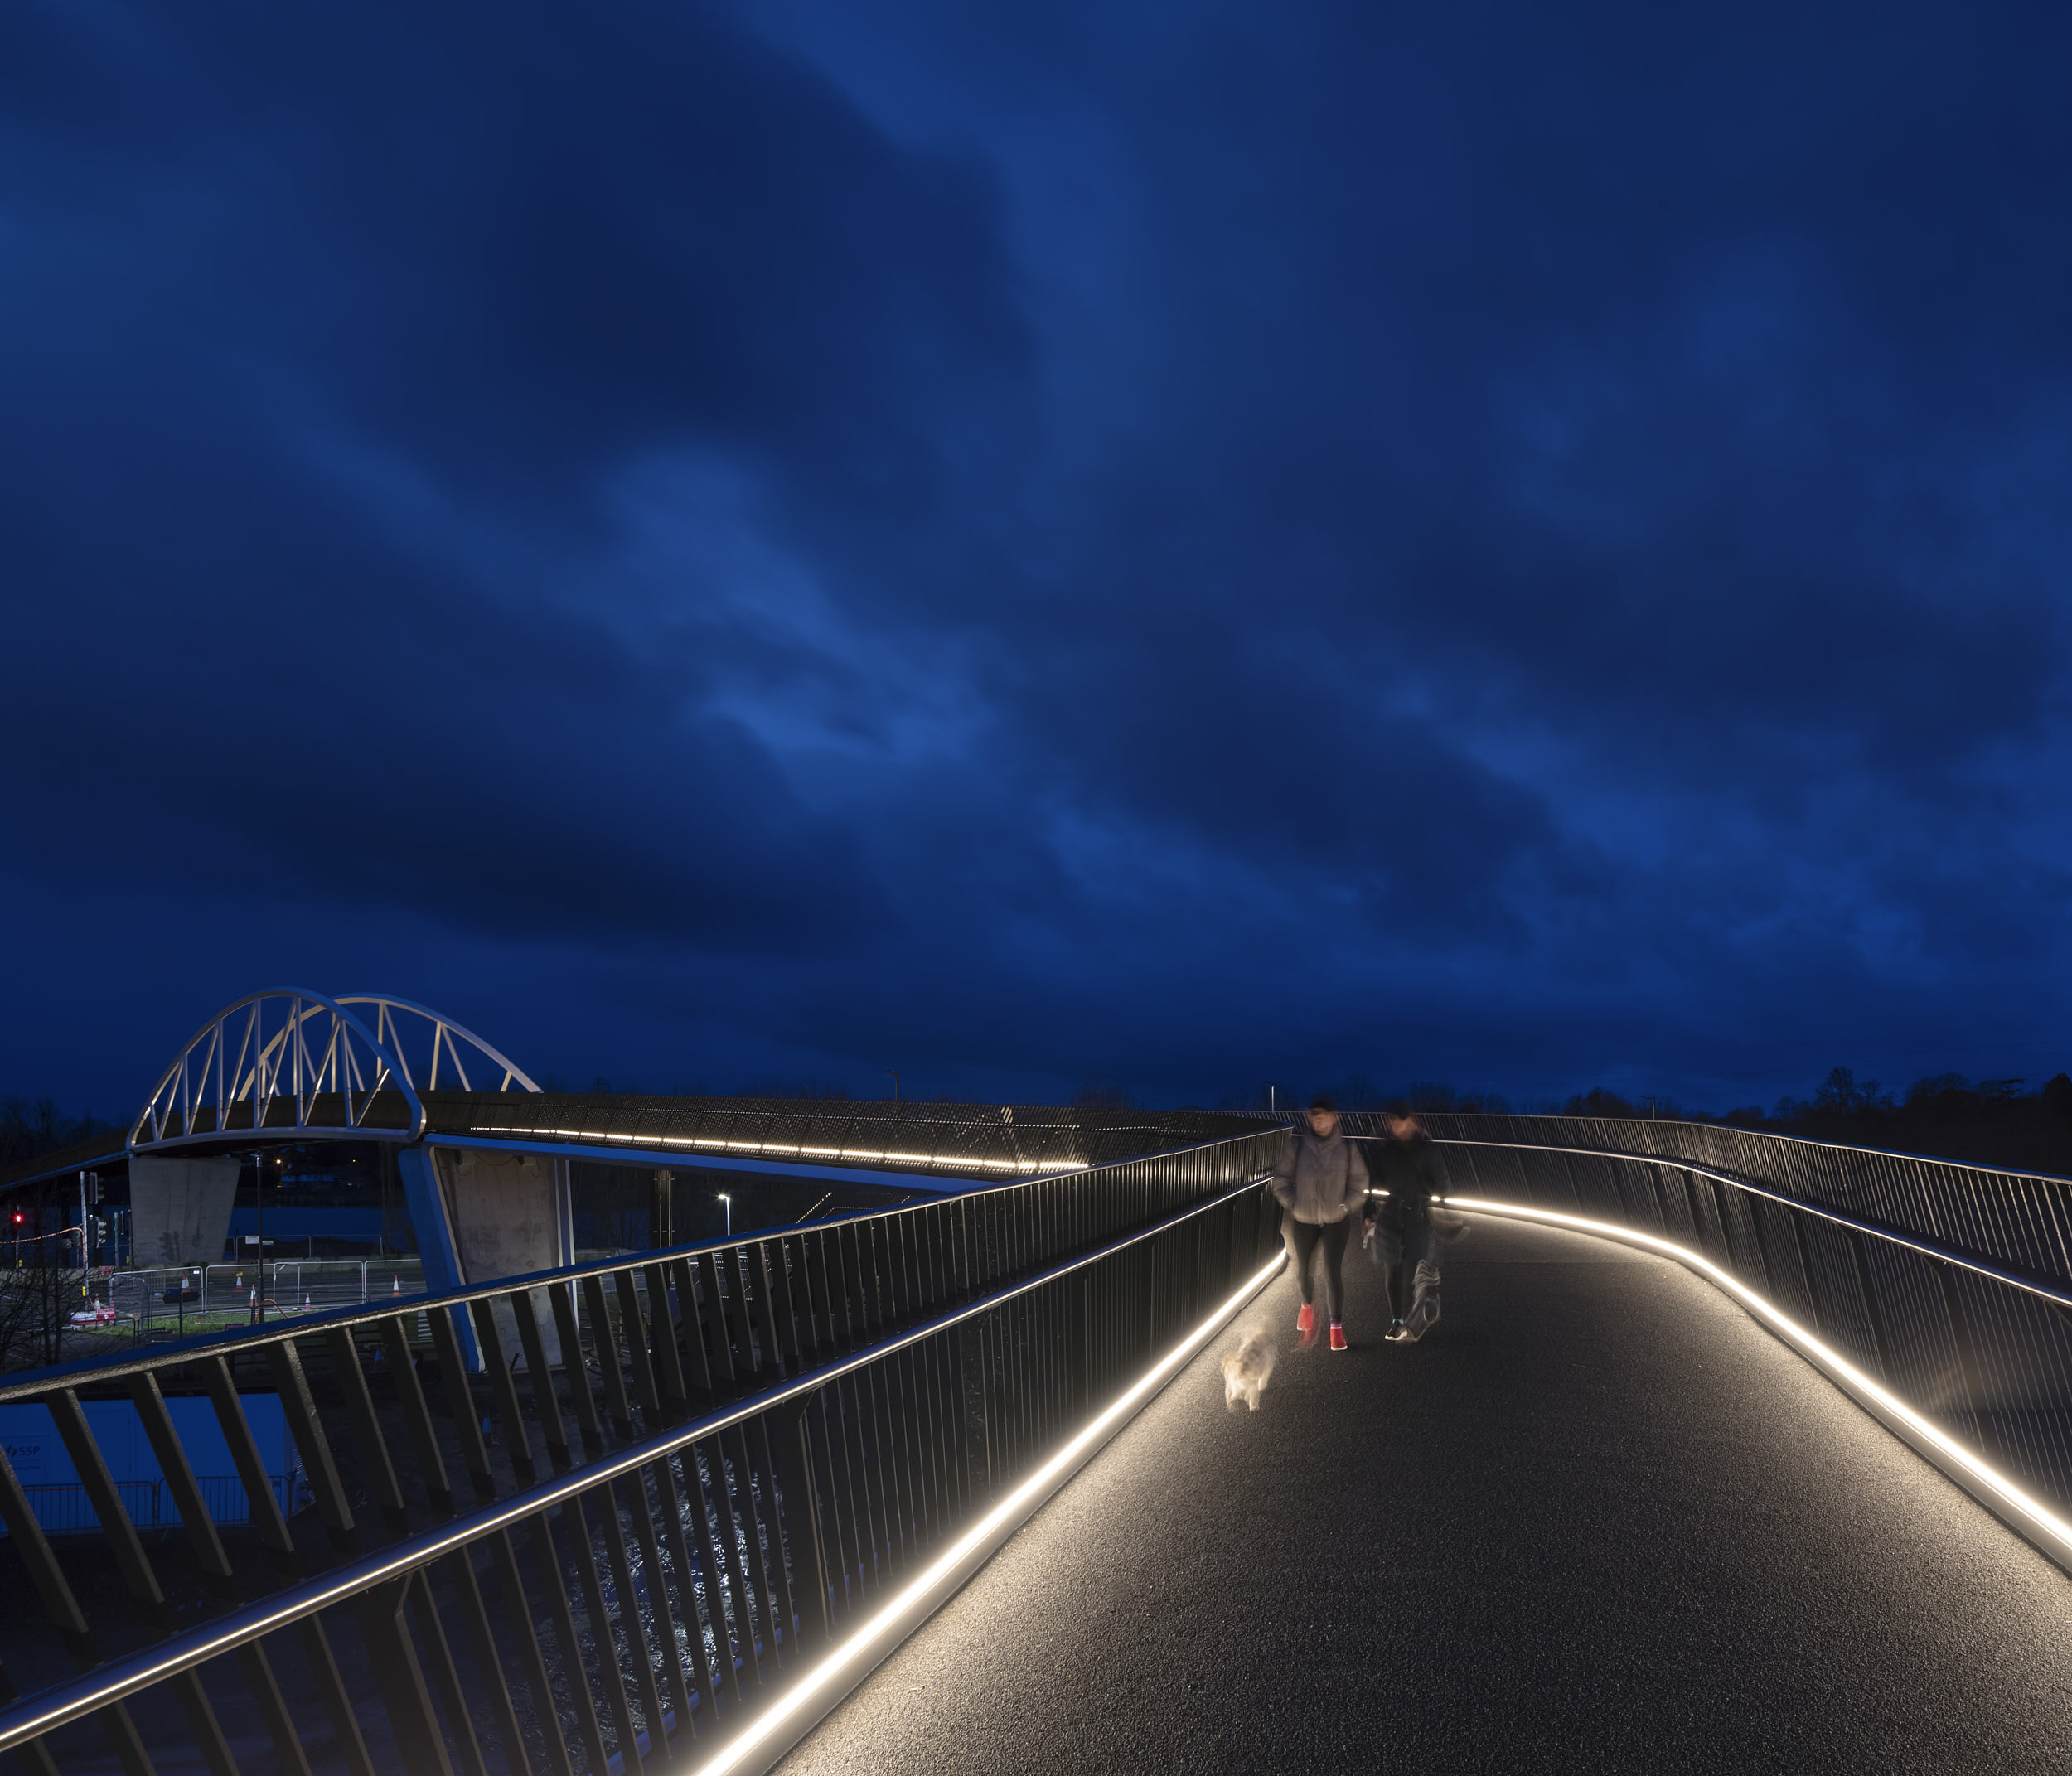 The design of the bridge references the visual language other local structures.